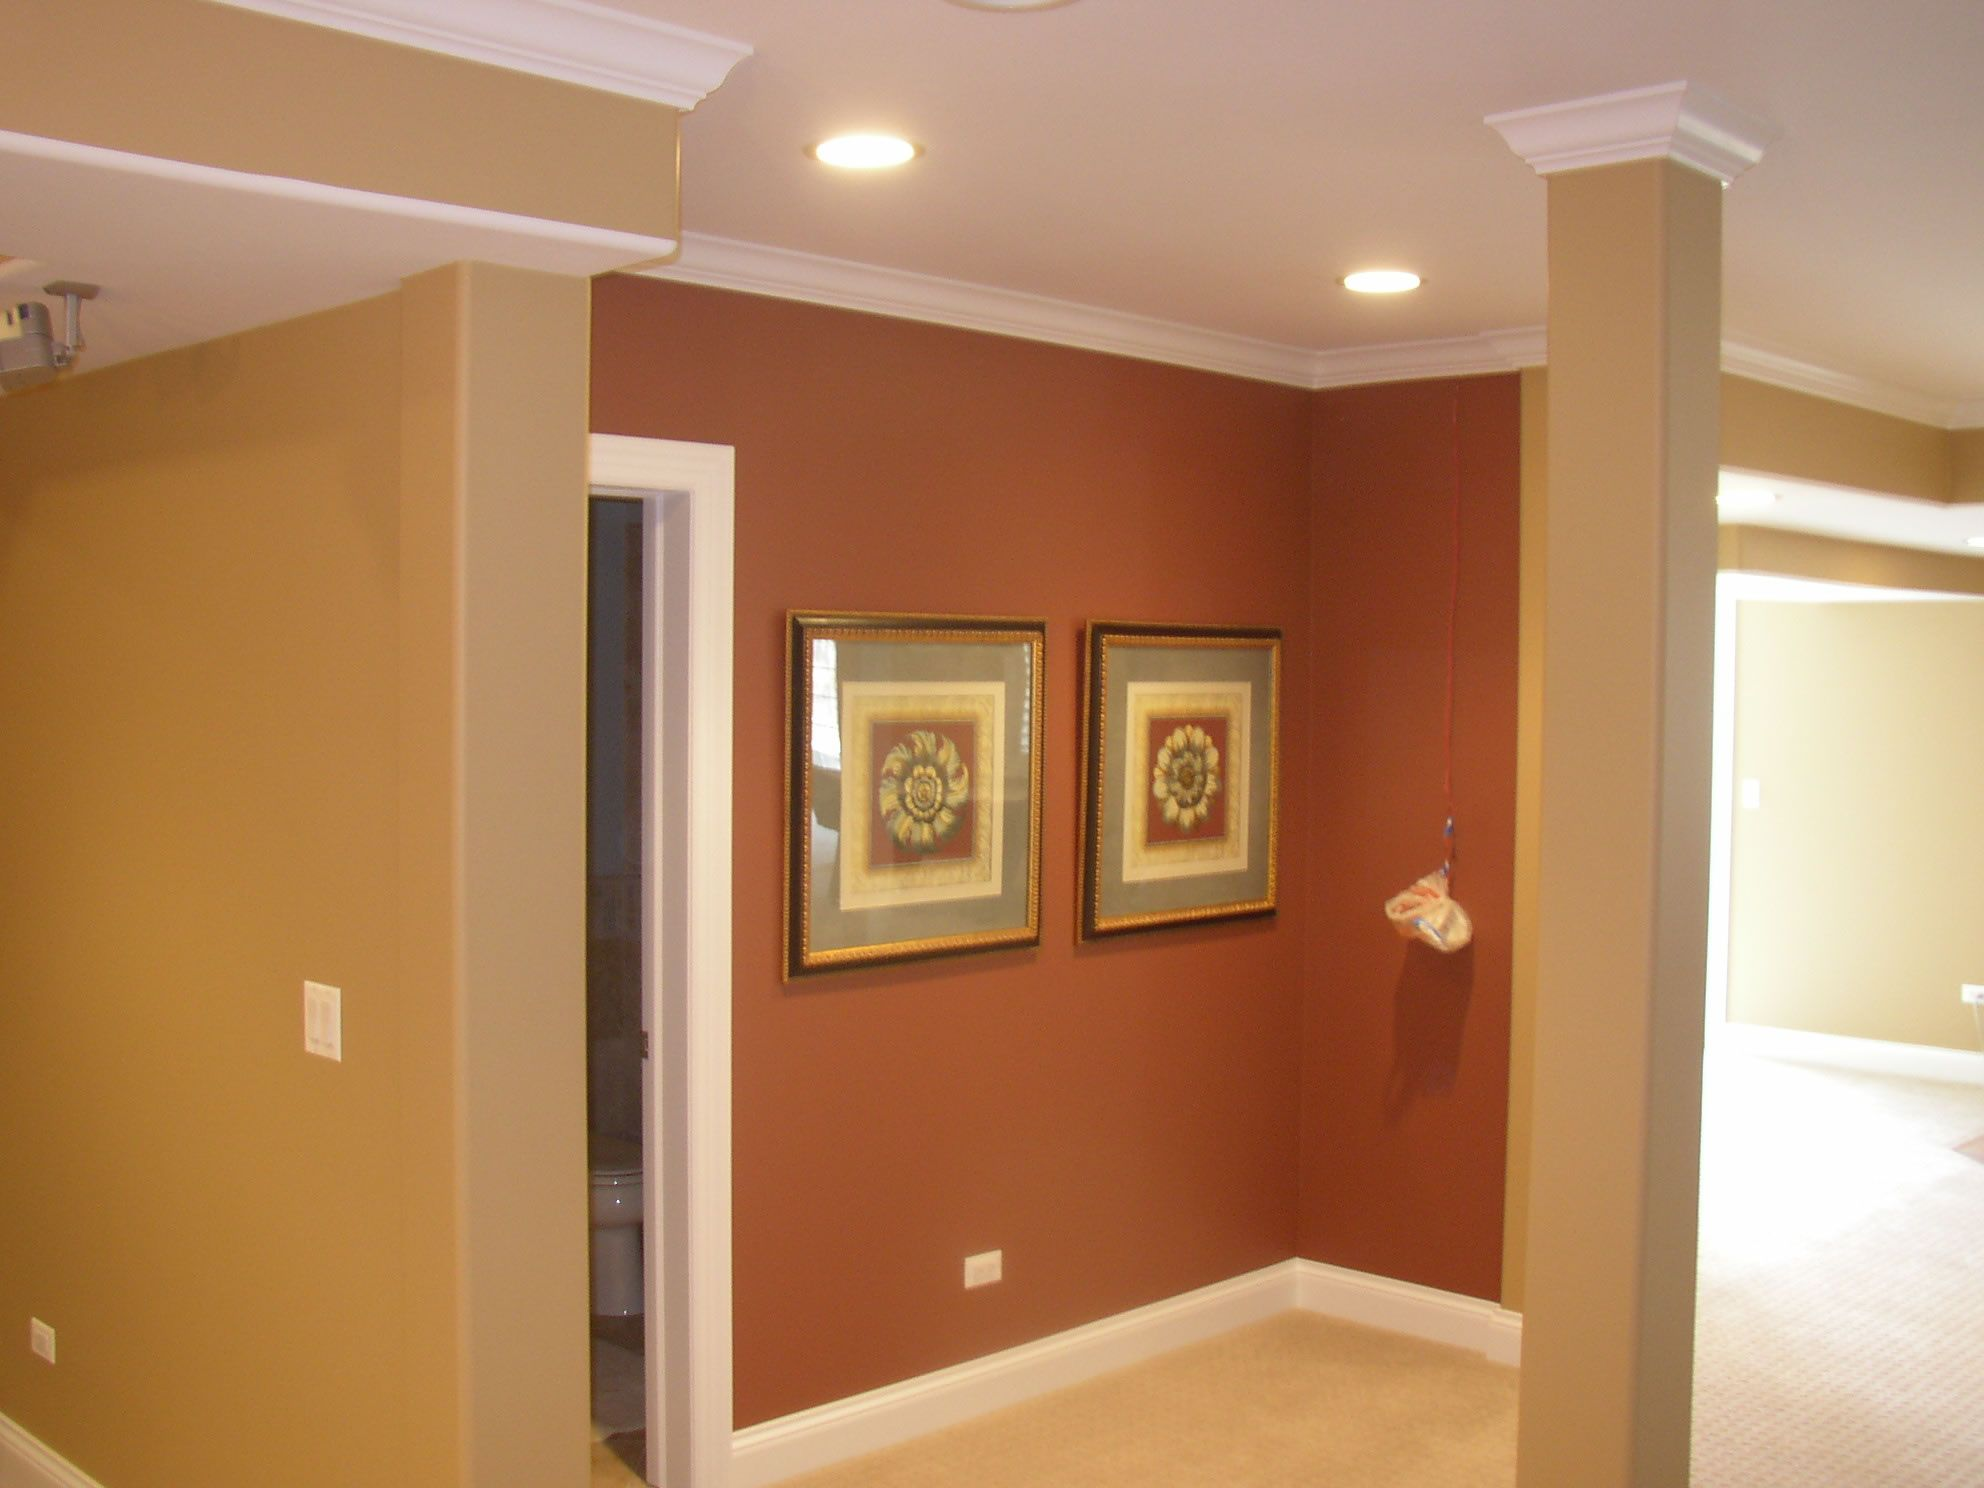 Paint Color Combinations For Bedroom Interior Paint Colors To Request A Free Estimate For Your